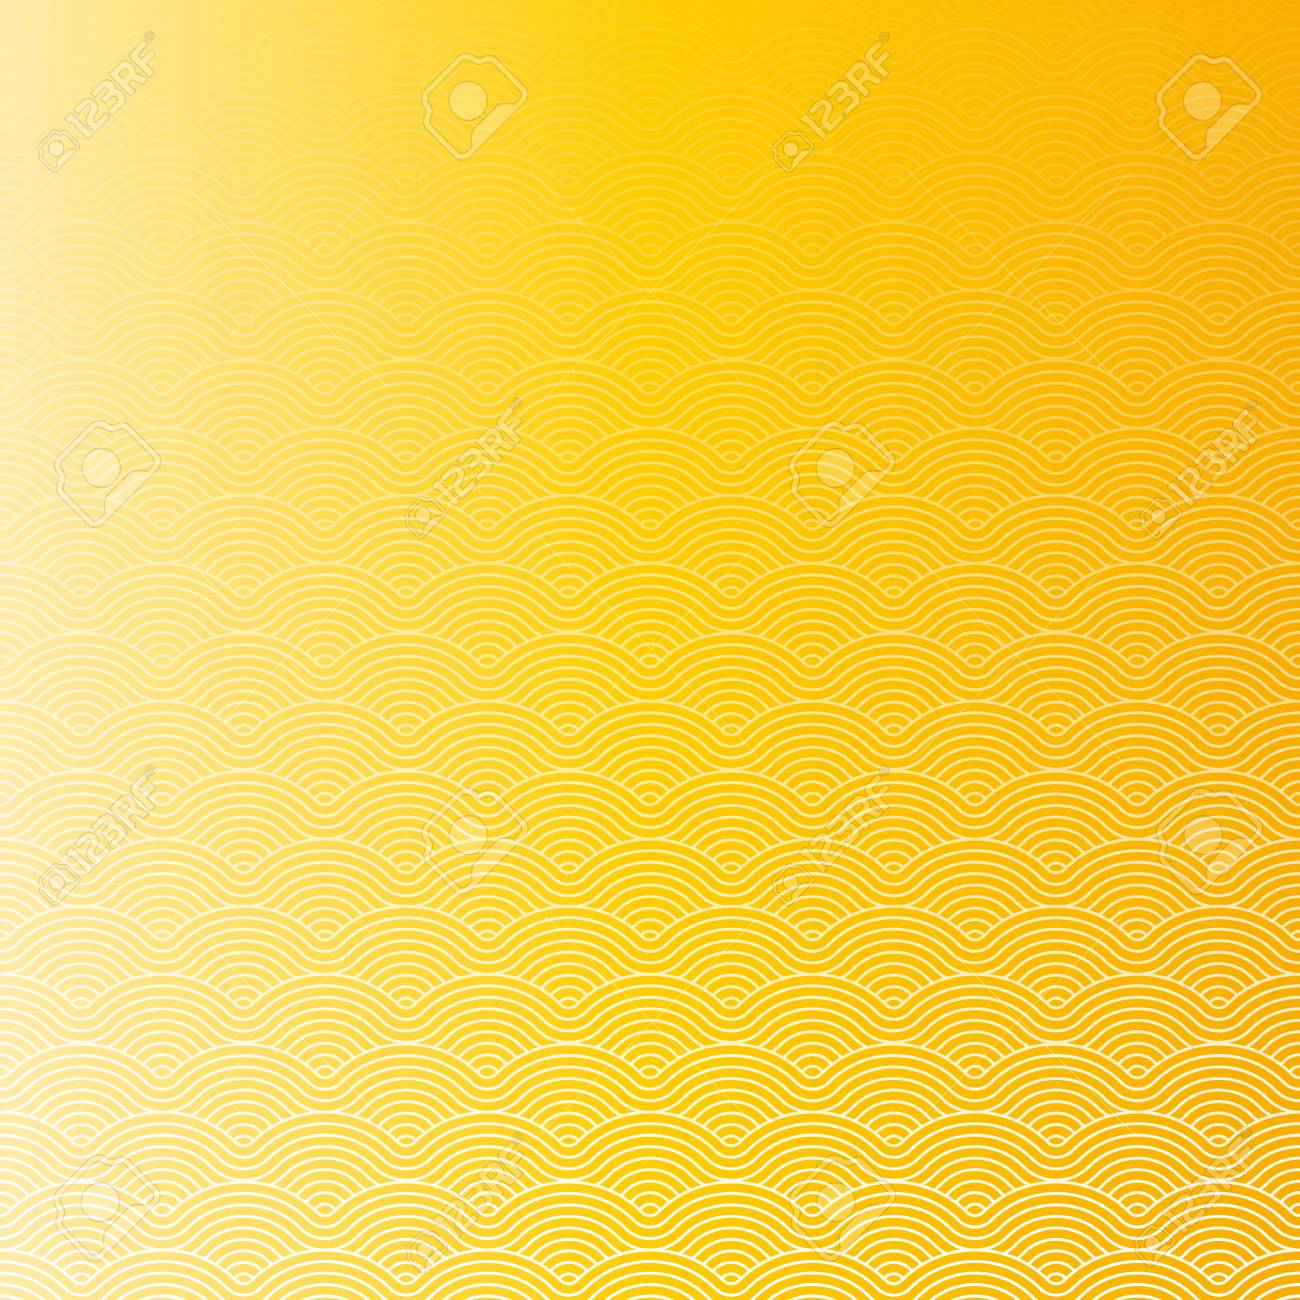 Colorful geometric repetitive vector curvy waves pattern texture background vector graphic illustration - 46085180